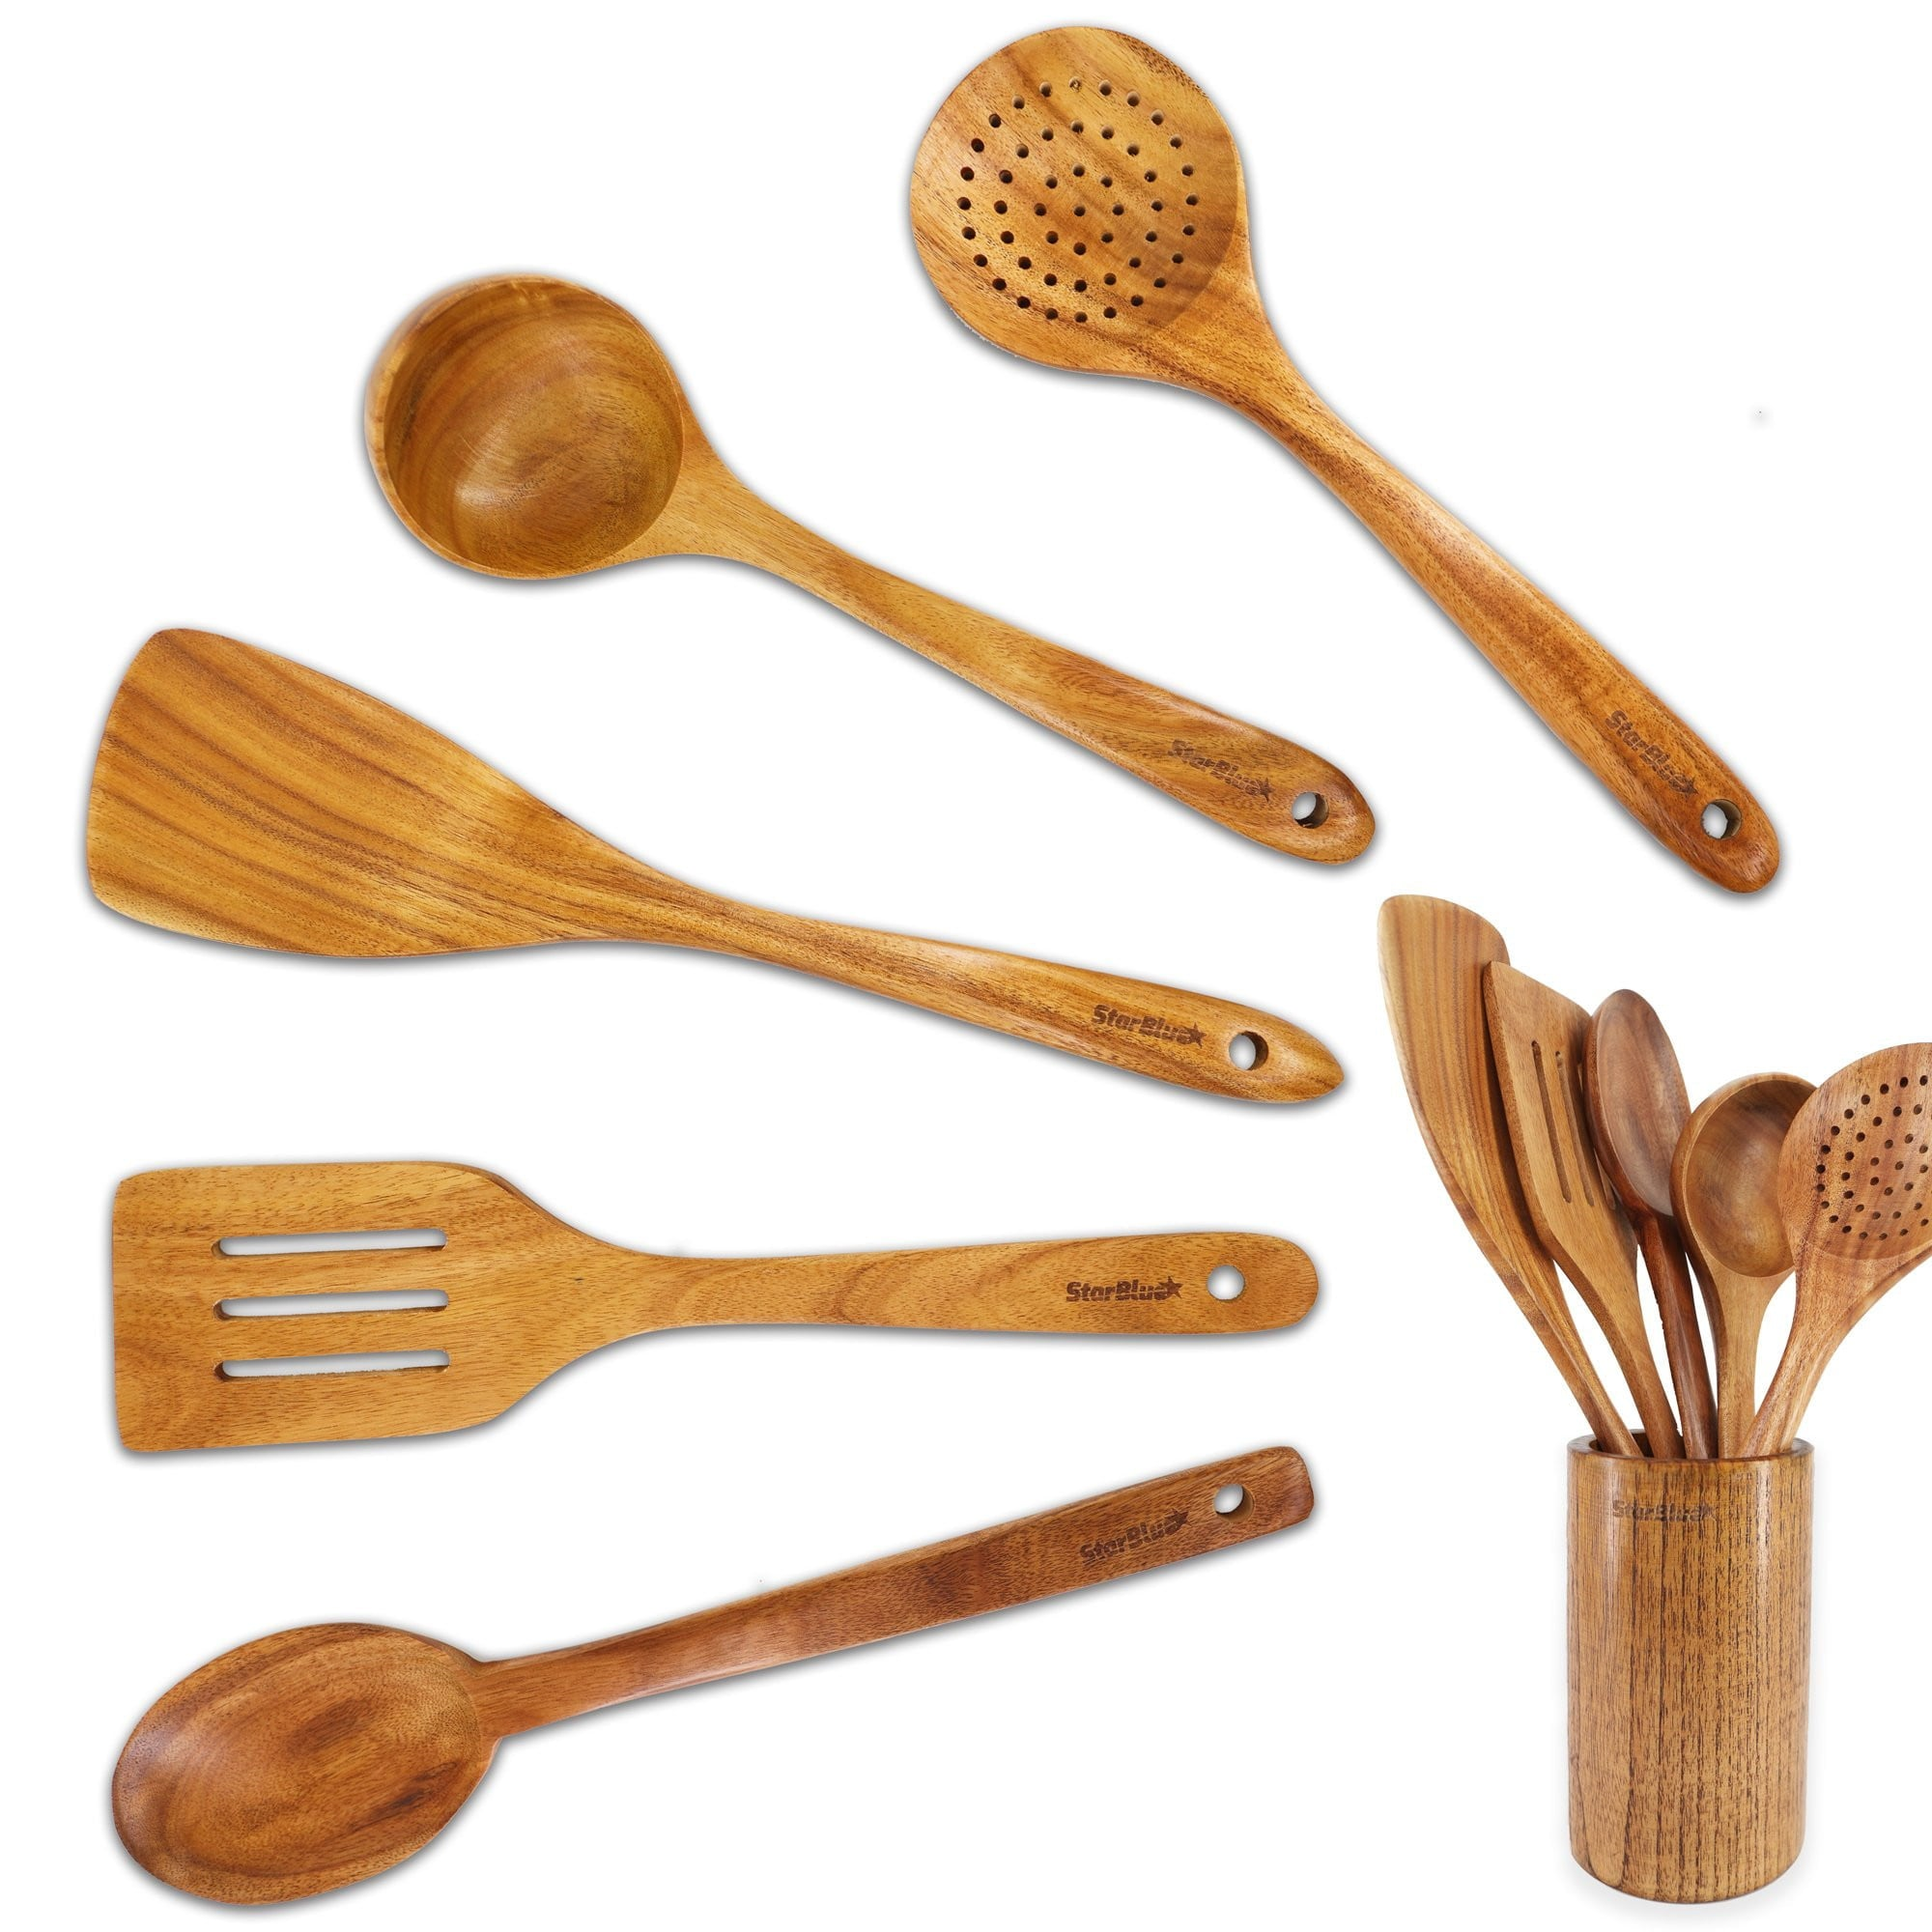 6 Pieces Acacia Wooden Cooking Utensils Set Starblue